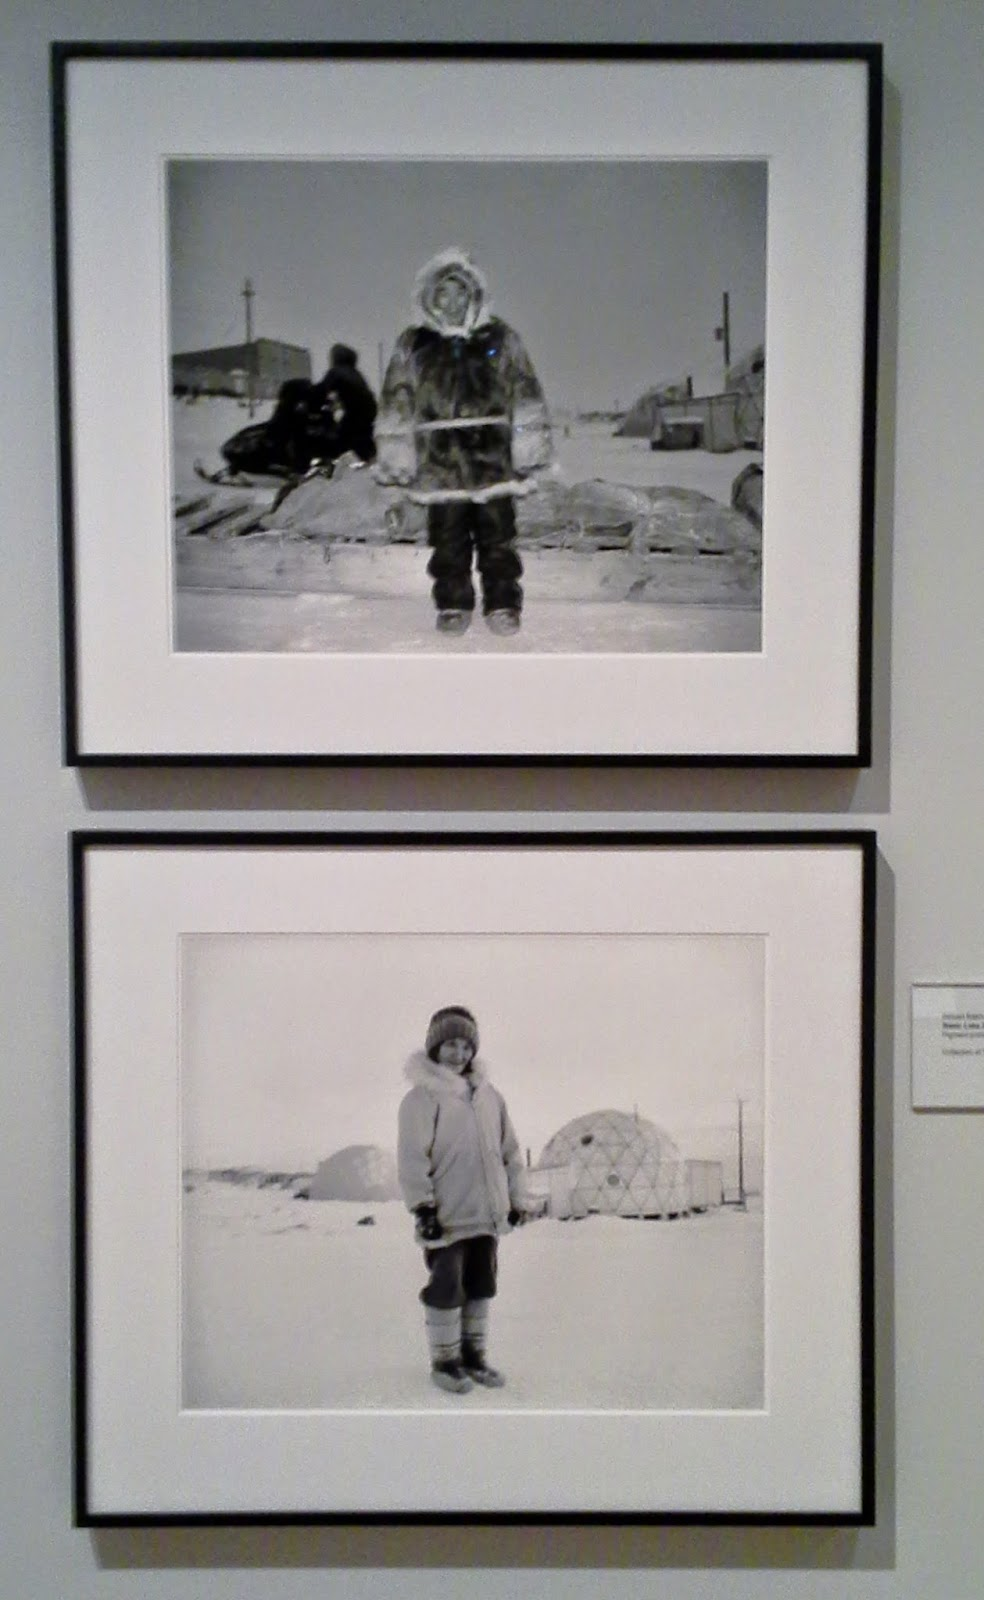 Magentic North Exhibit:, Toronto Public Reference Library, Culture, Art,Melanie.Ps, The Purple Scarf, Baker Lake Series Photographs, 1983 by William Eakin